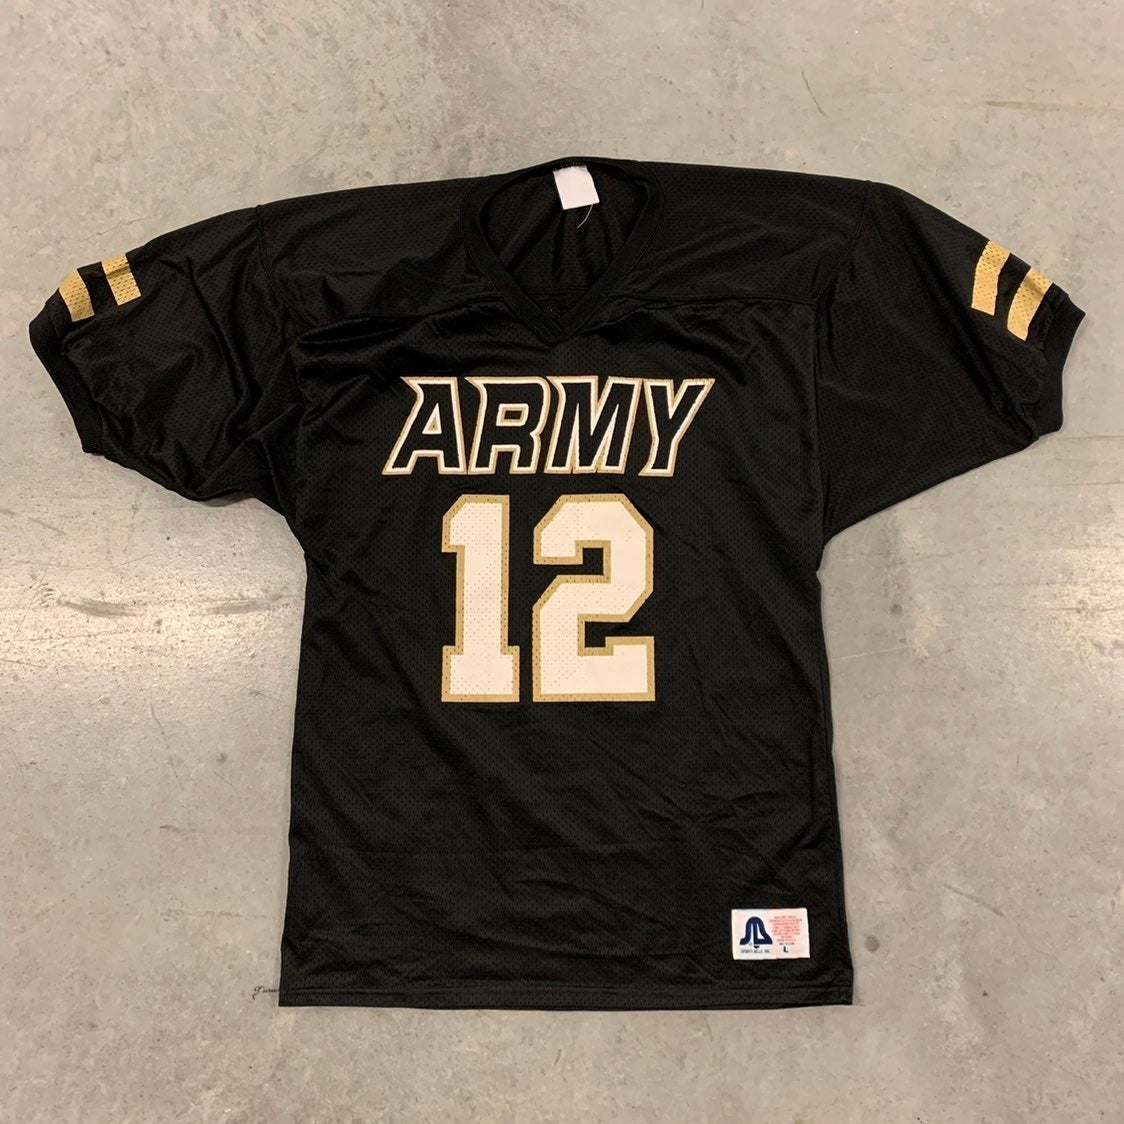 Vintage Army Authentic Football Jersey